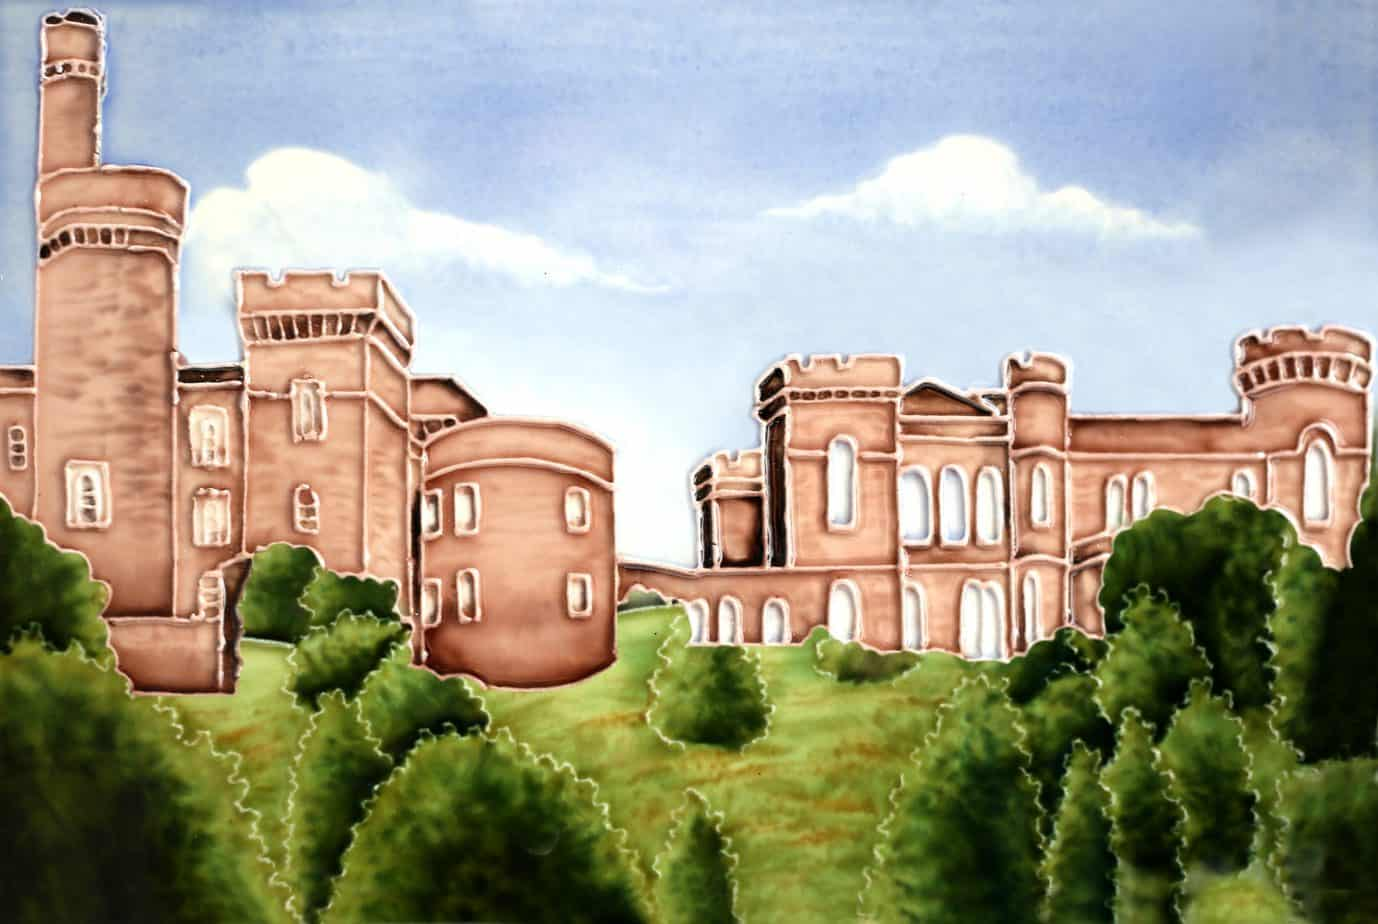 Inverness Castle 8×12 (191122)